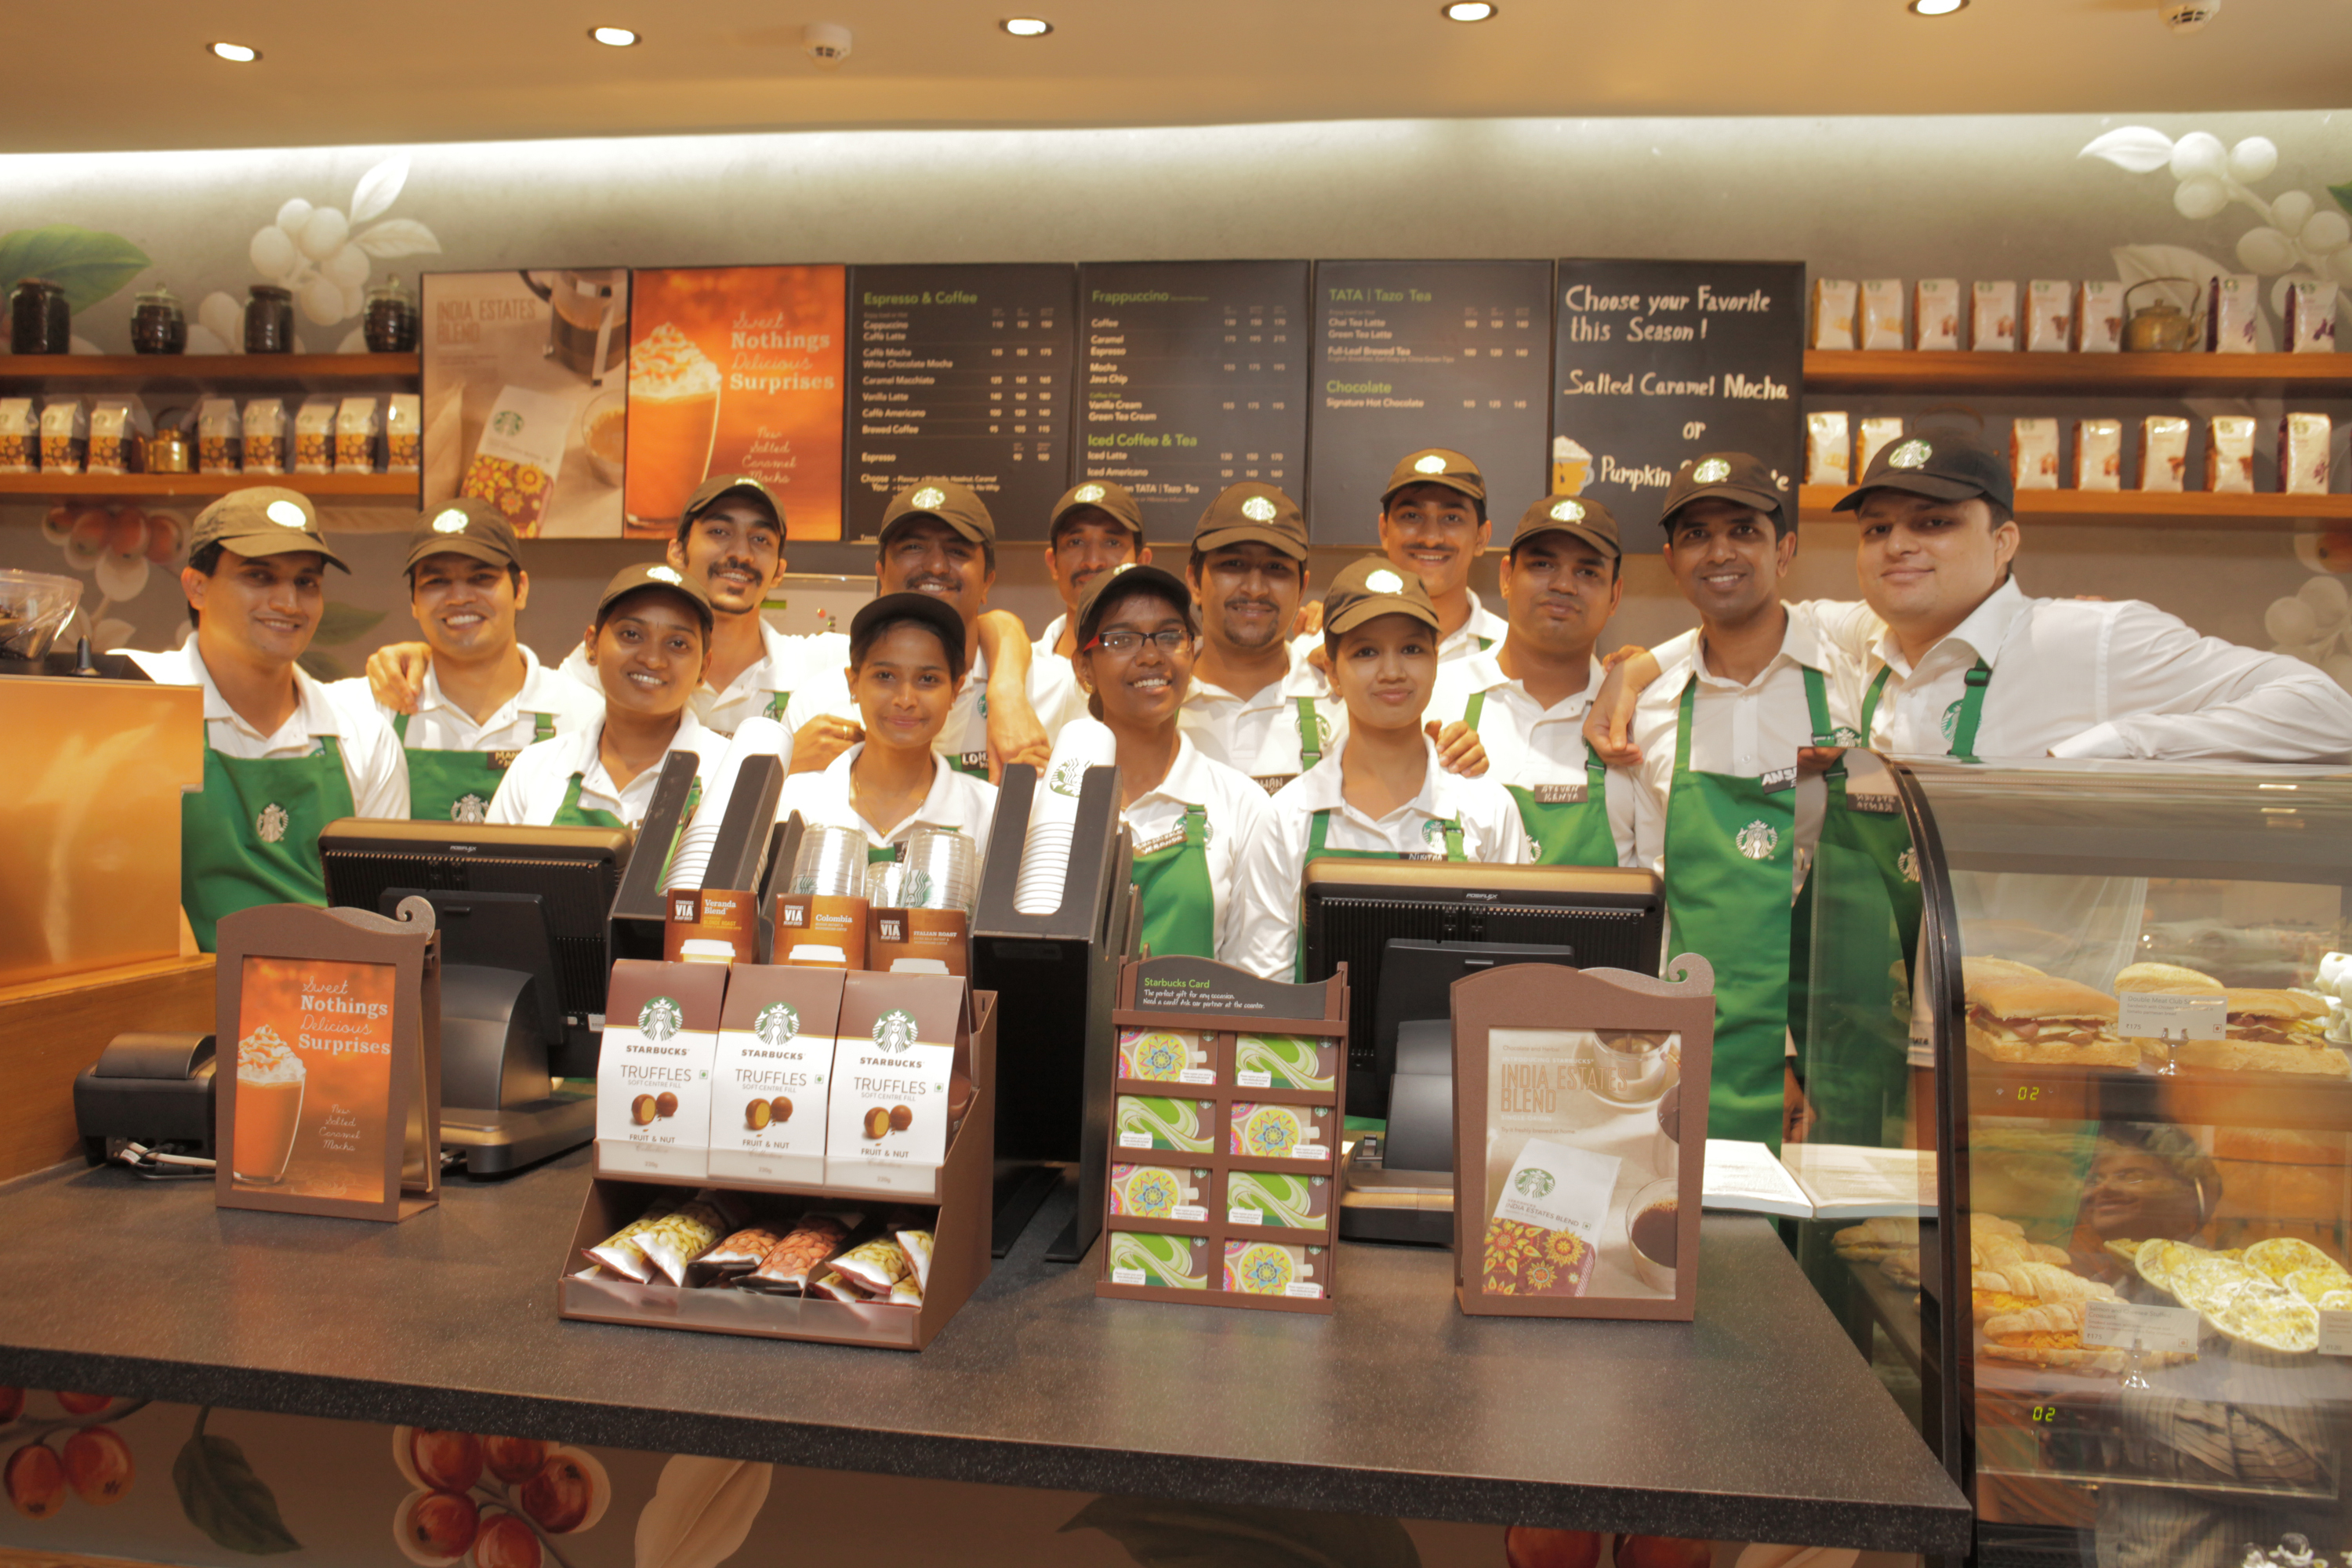 Starbucks Continues Expansion in India with the Opening of the ...